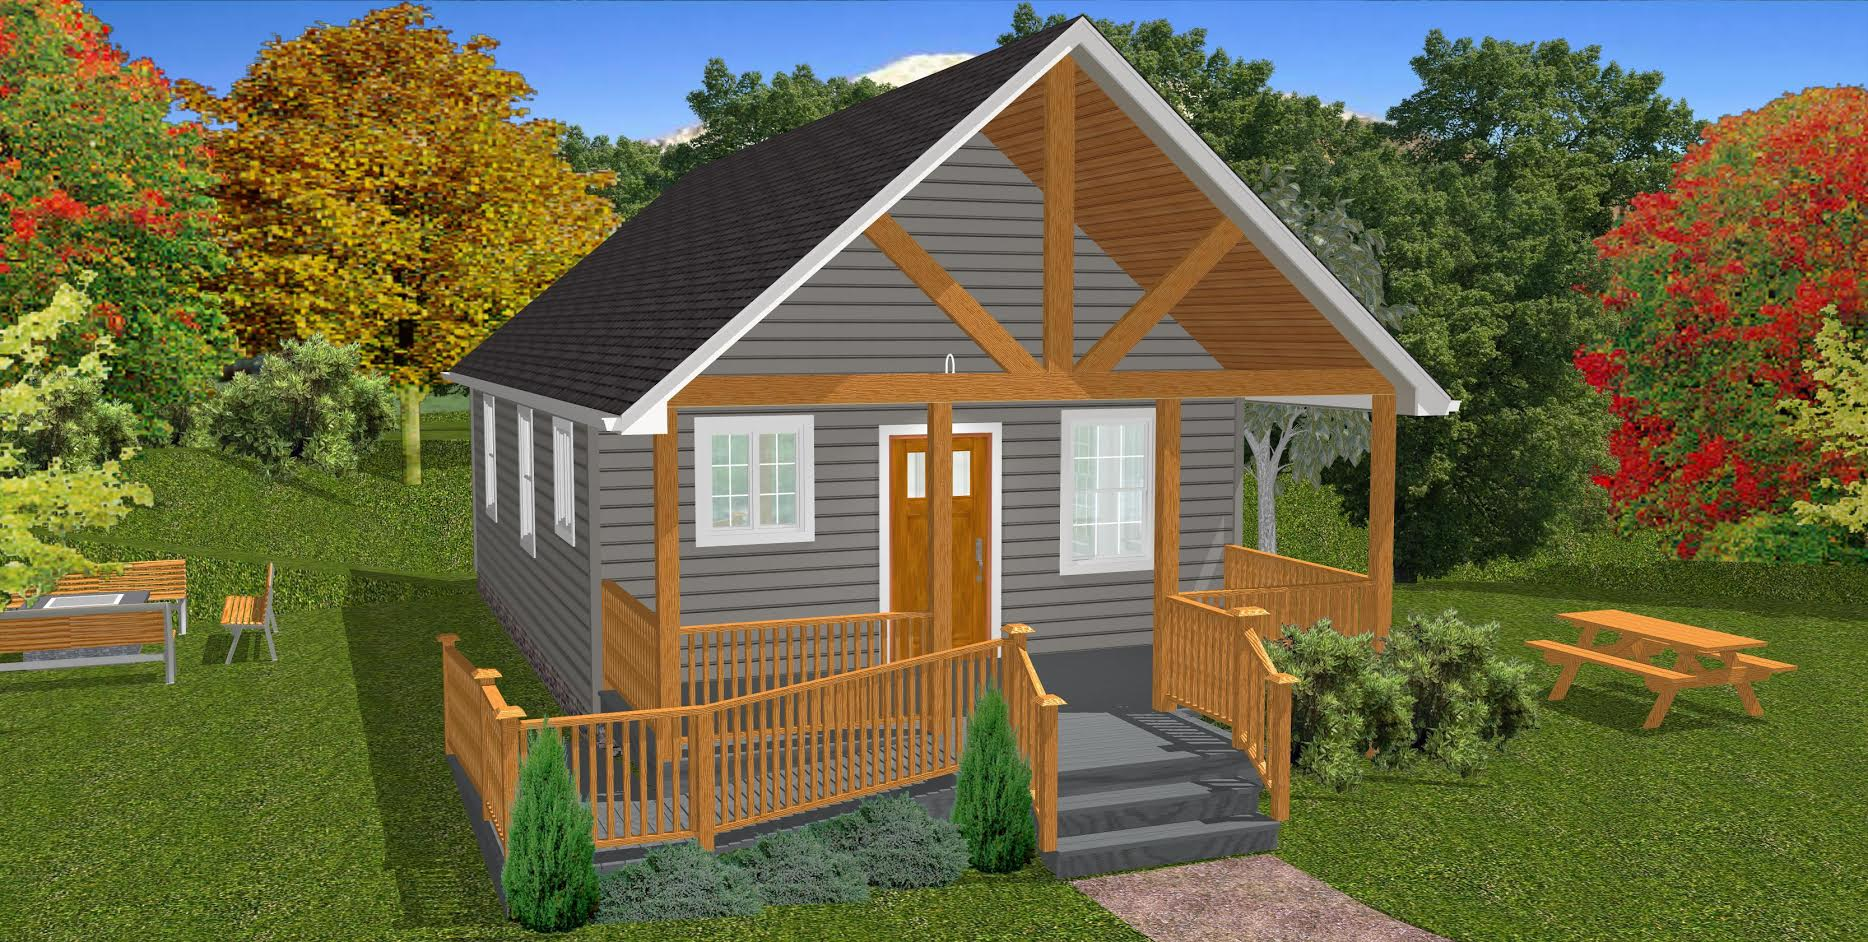 The oasis 600 sq ft wheelchair friendly home plans 600 sq foot house